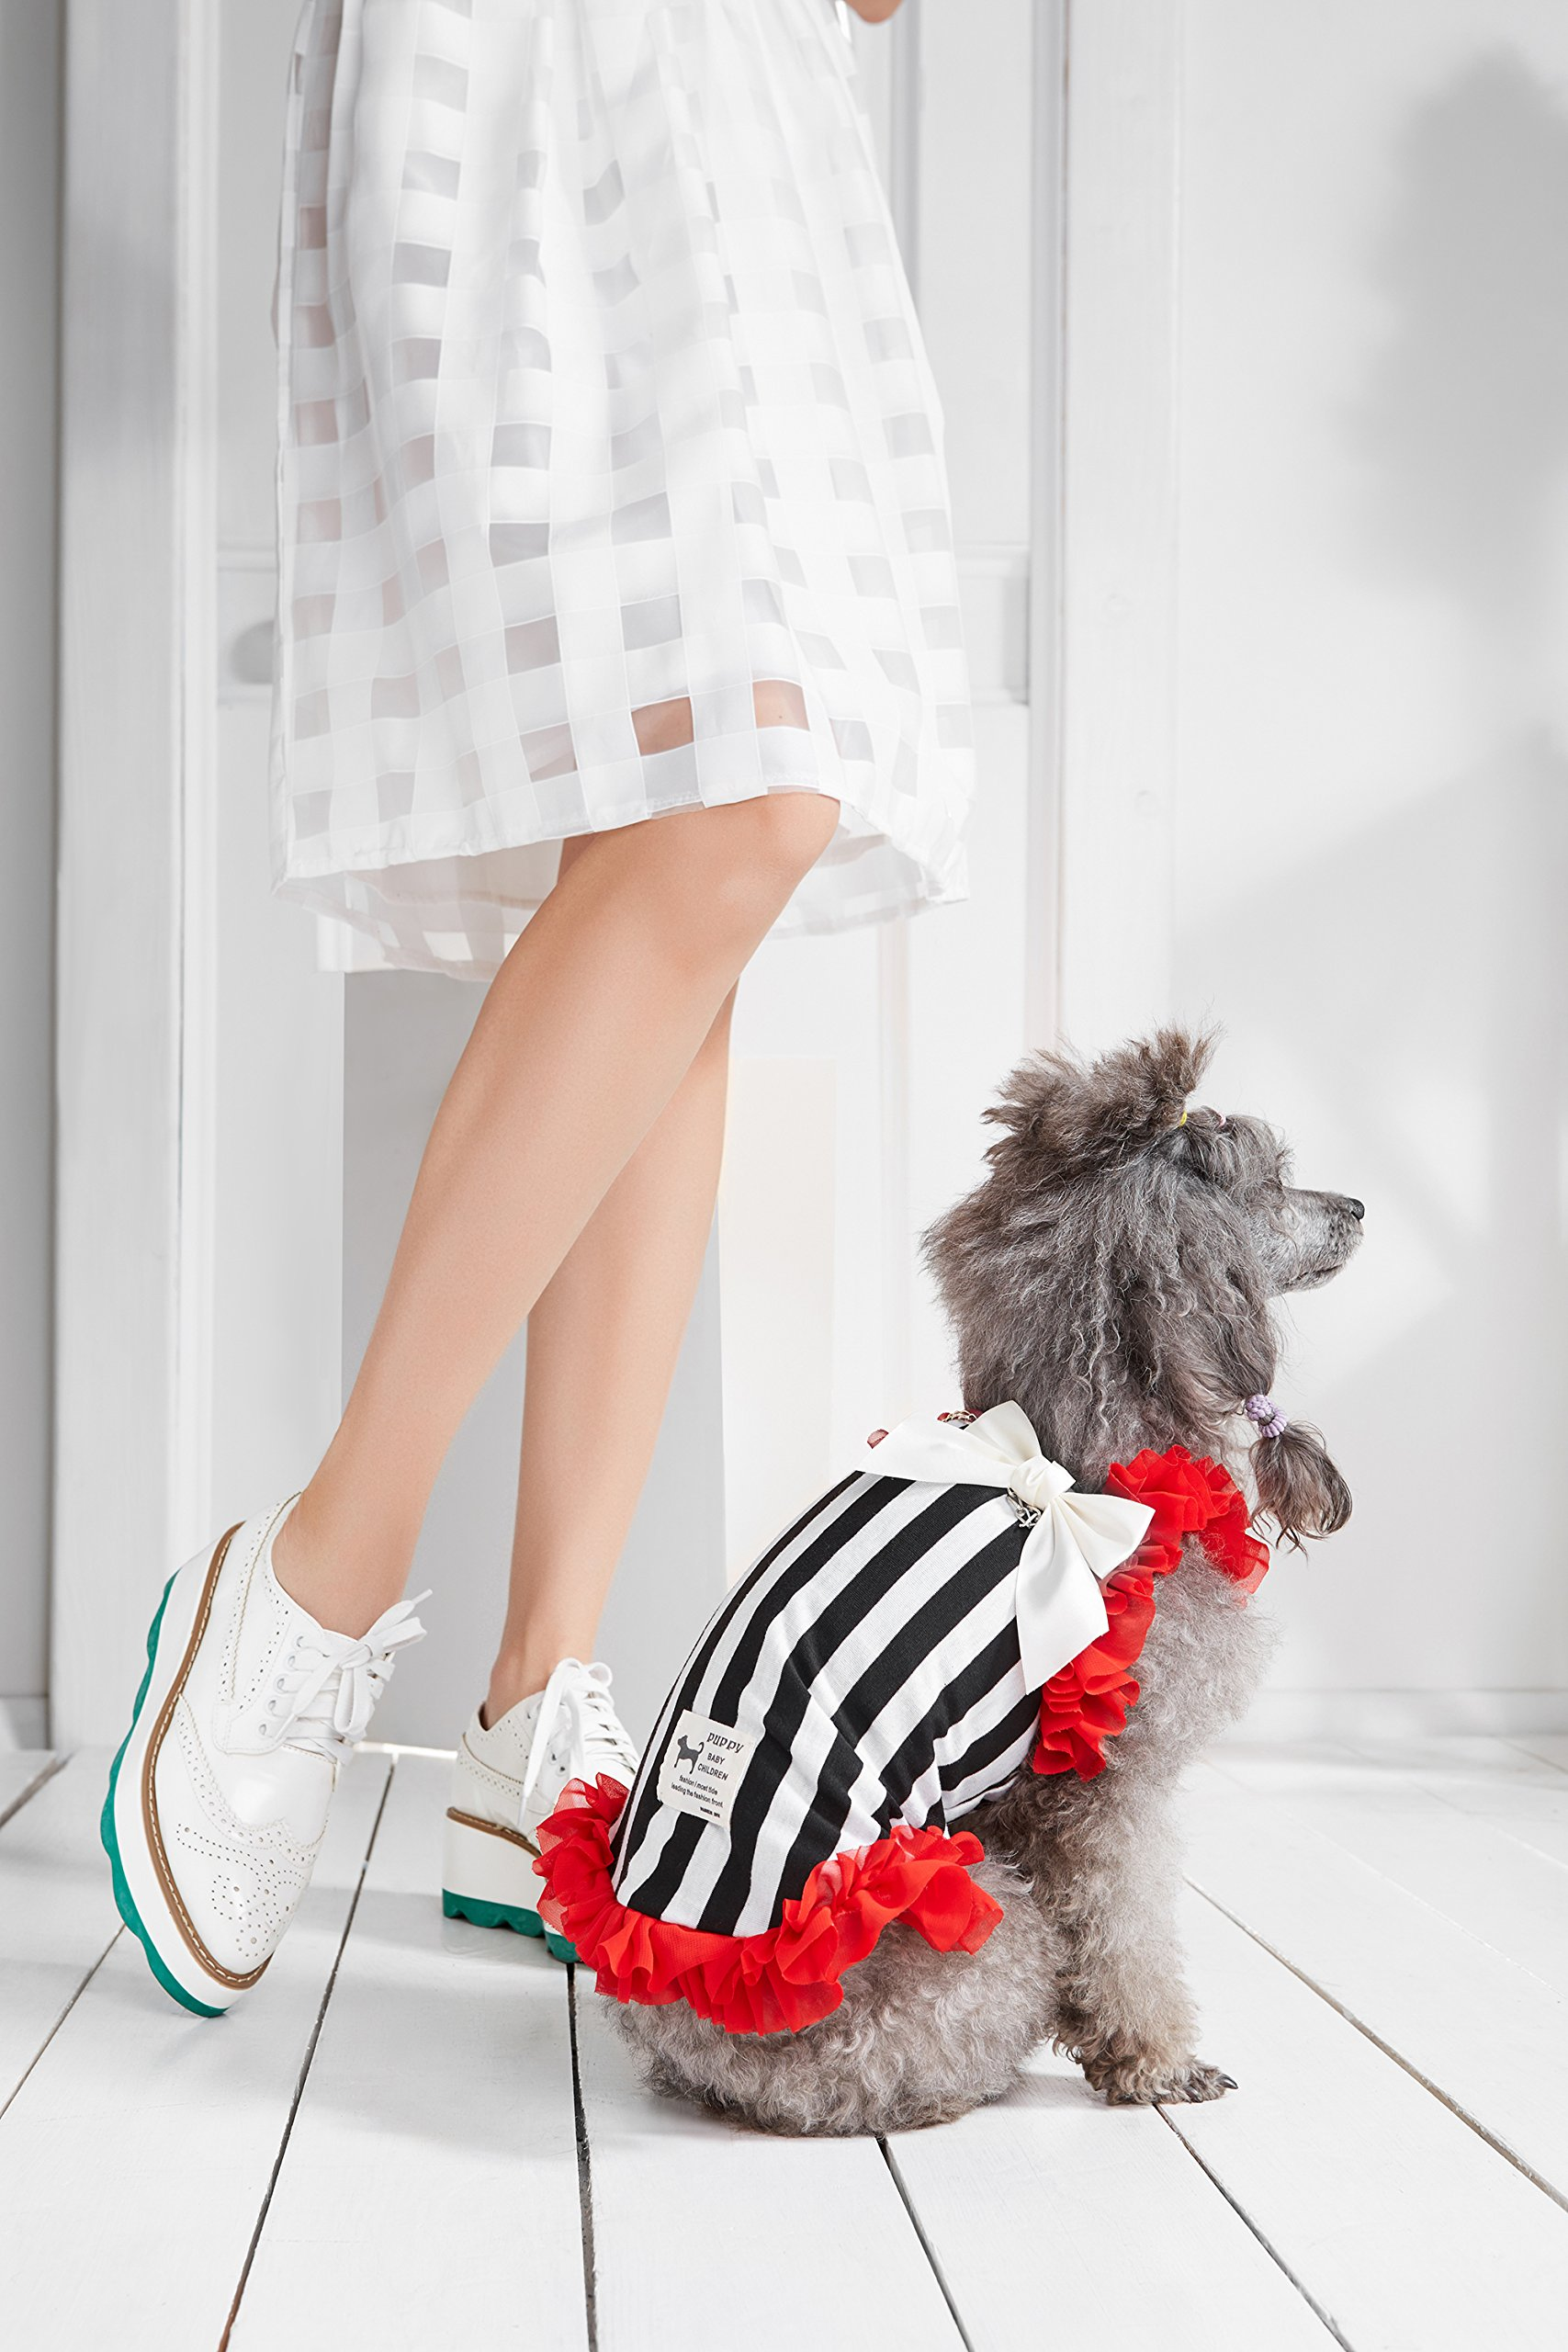 """Small Dog Striped Dress With Ruffles Satin Bow Chain Dogs Cotton Summer Clothes (Toy Plus: 10"""" / 5-9 lbs, Red, Black, White) by Nothing But Love Pets (Image #8)"""